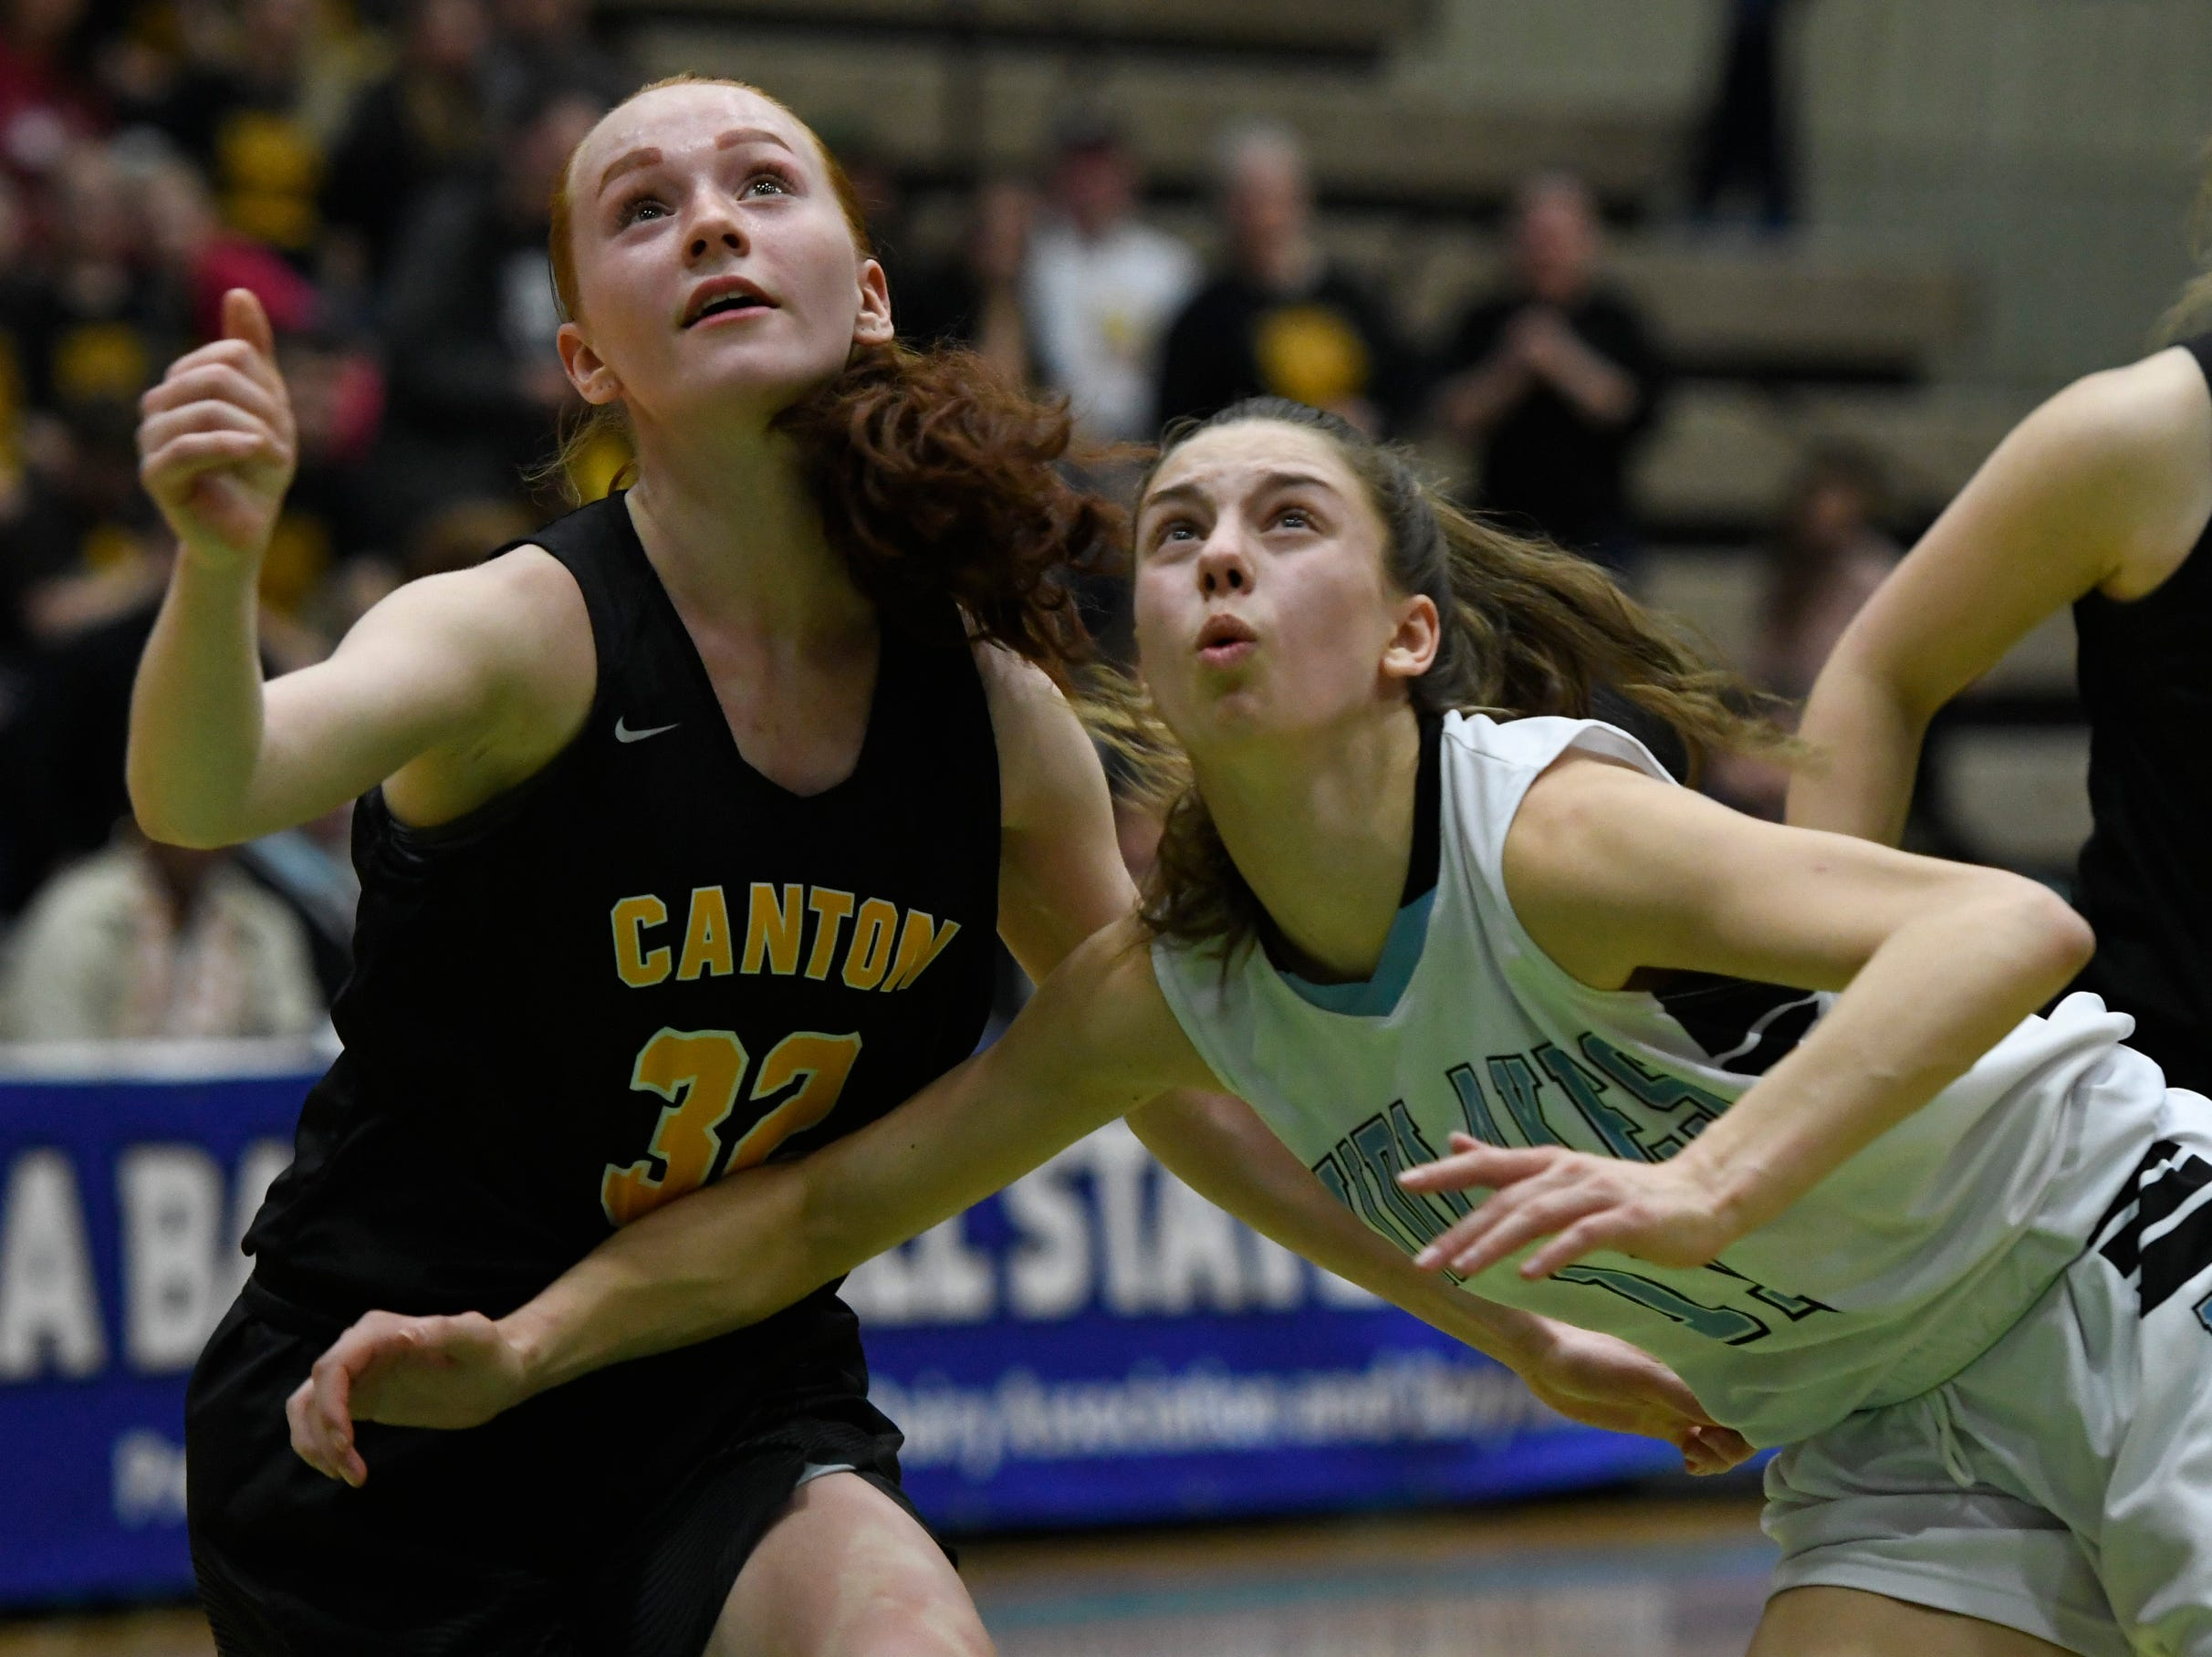 Midlakes's Macy Kisner and Canton's Hailee Duvall battle for a rebound during their Class B State Semifinal at Hudson Valley Community College in Troy, N.Y. on Friday, Mar. 15, 2019.